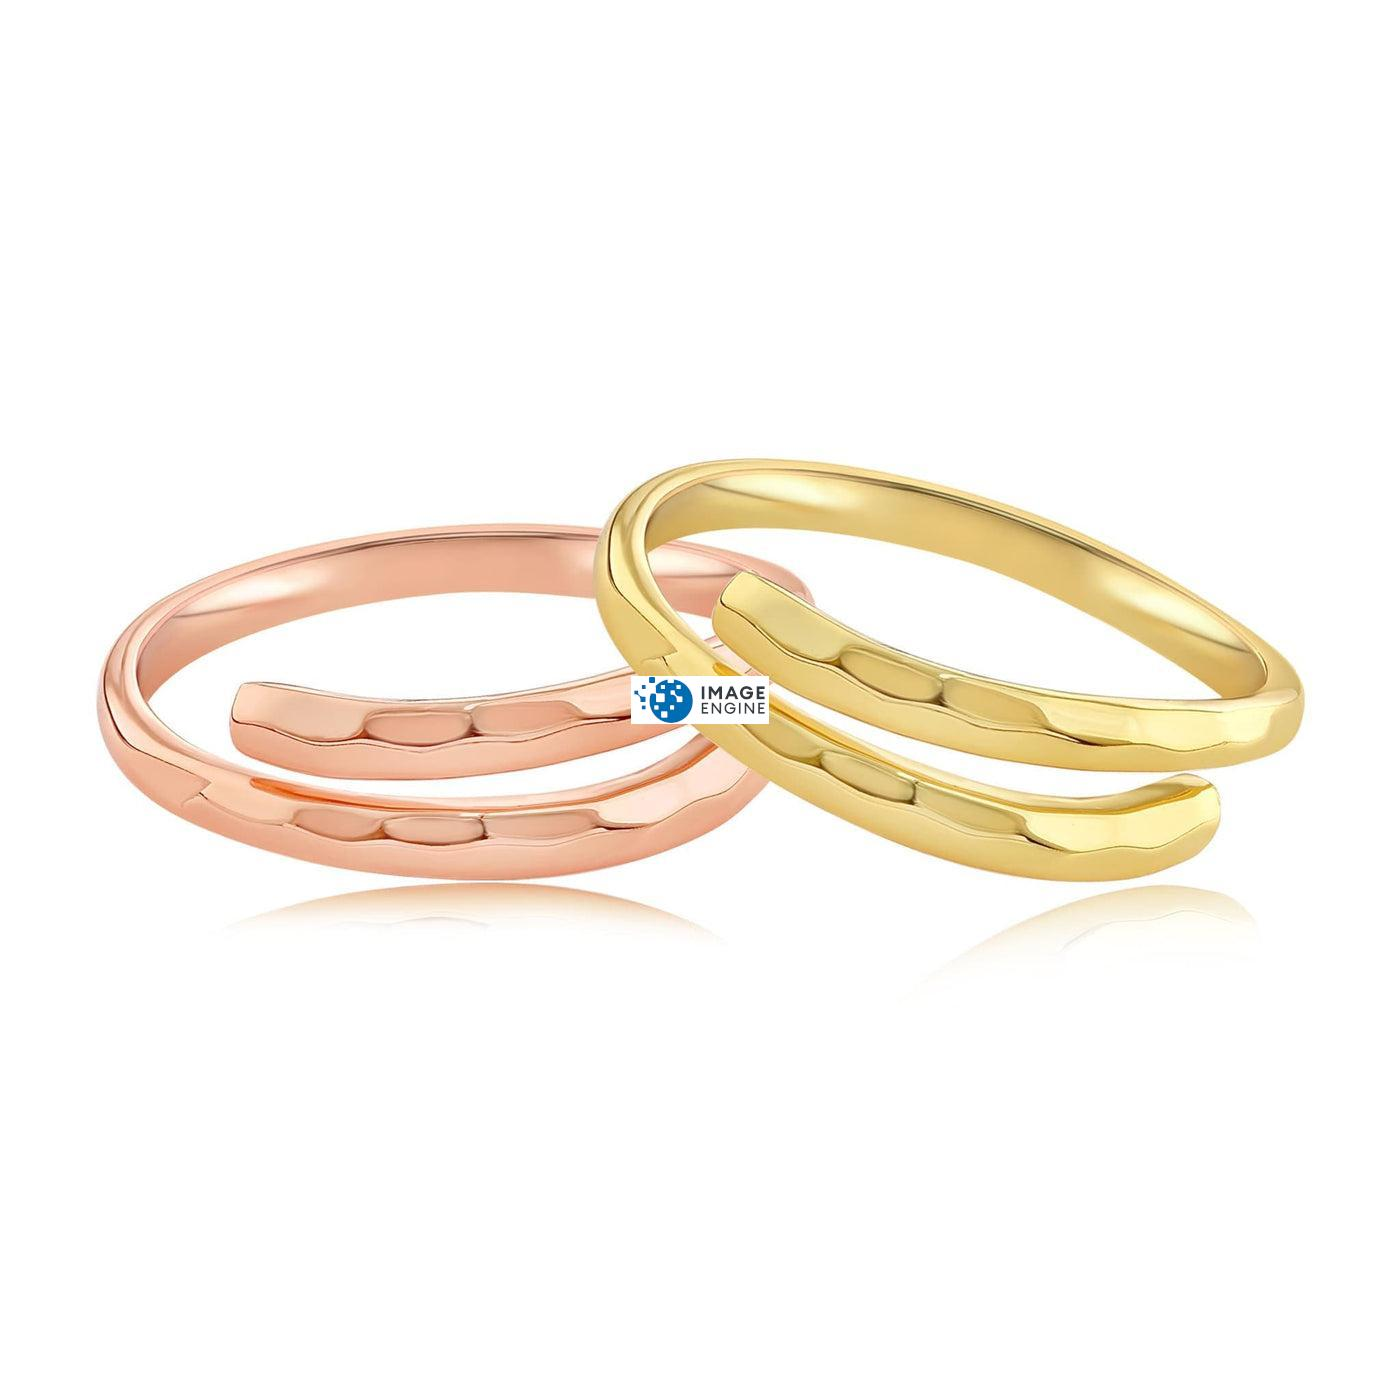 Minimalist Thumb Ring - Front View Side by Side - 18K Rose Gold Vermeil and 18K Yellow Gold Vermeil